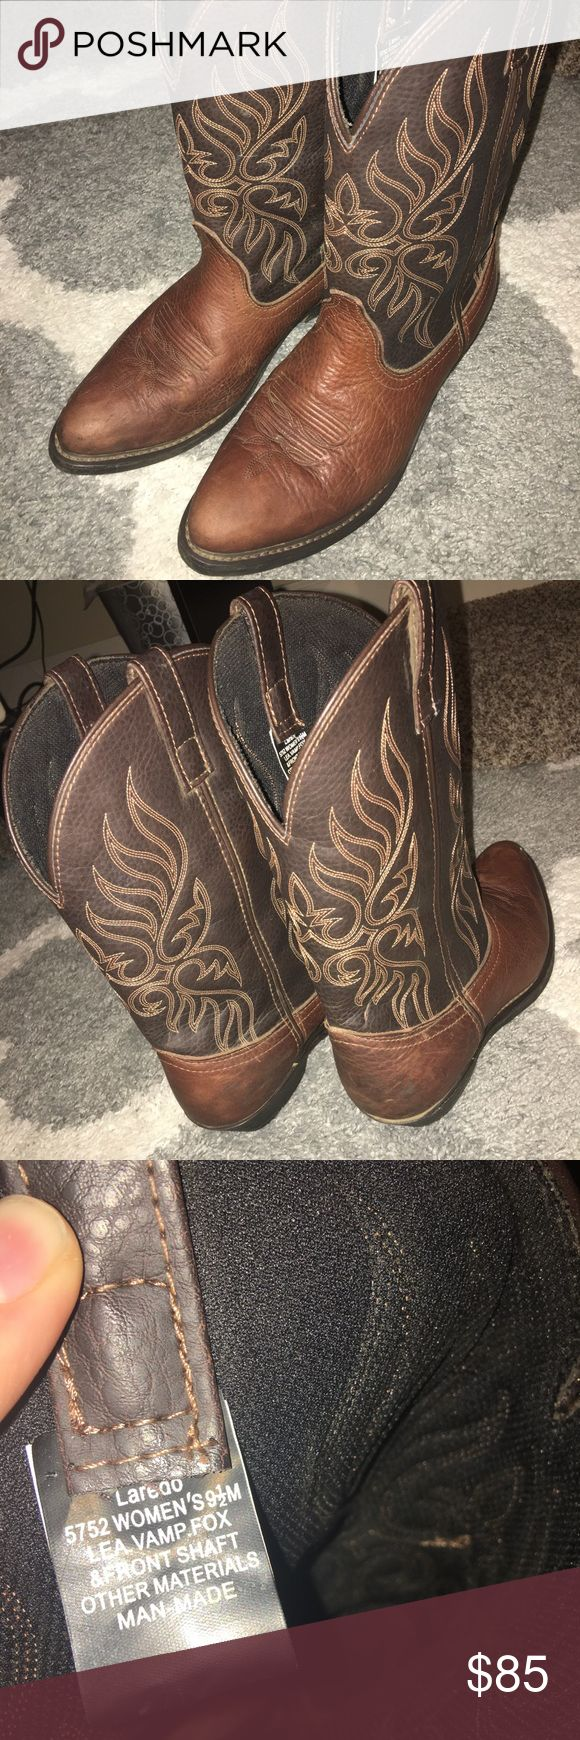 Laredo Cowboy Boots - Woman's Size 9.5 Wore to a country concert for a weekend and never wore them again excellent shape and bought brand new at Centerville Country Store. Laredo Shoes Winter & Rain Boots